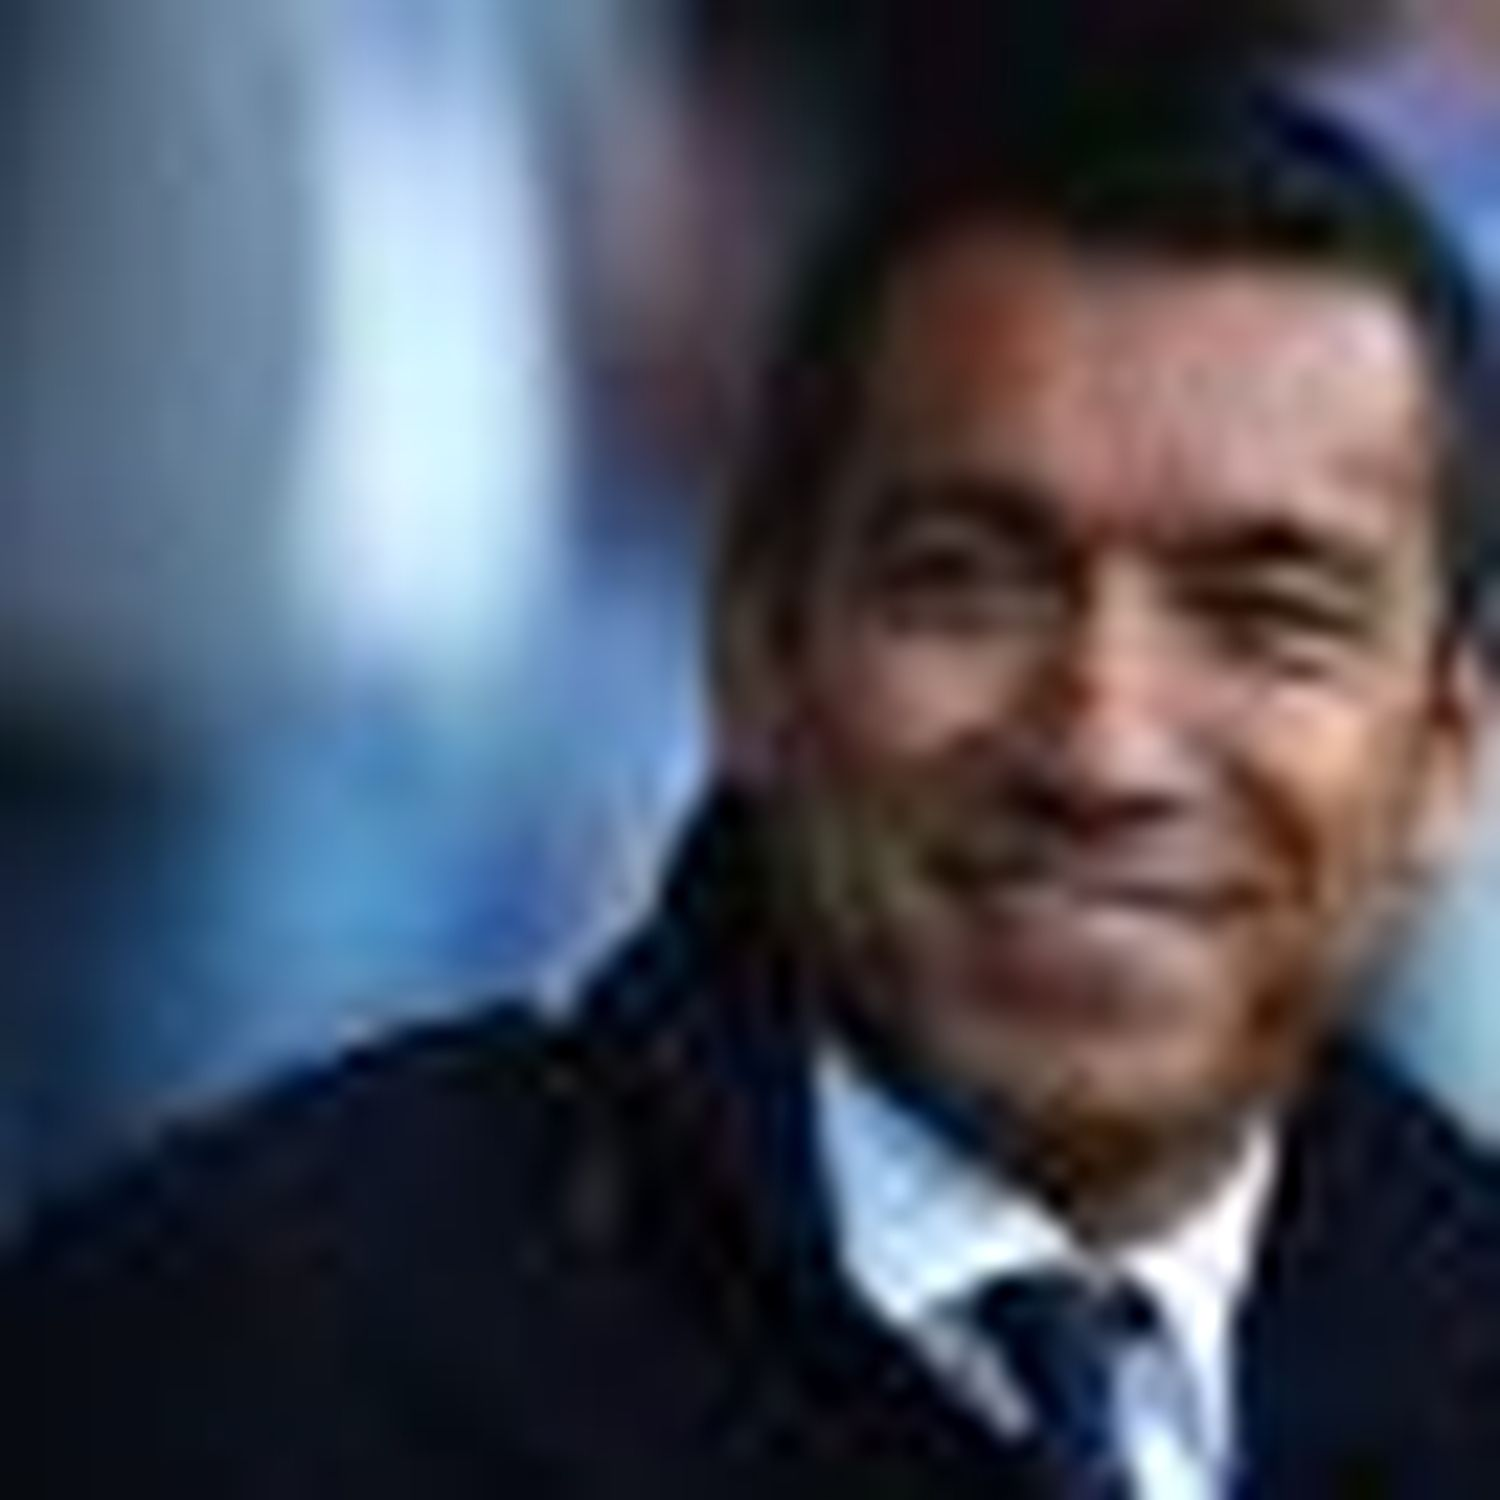 Inside Football with Guillem Balague: In conversation with former Arsenal and Barcelona star Giovanni van Bronckhorst